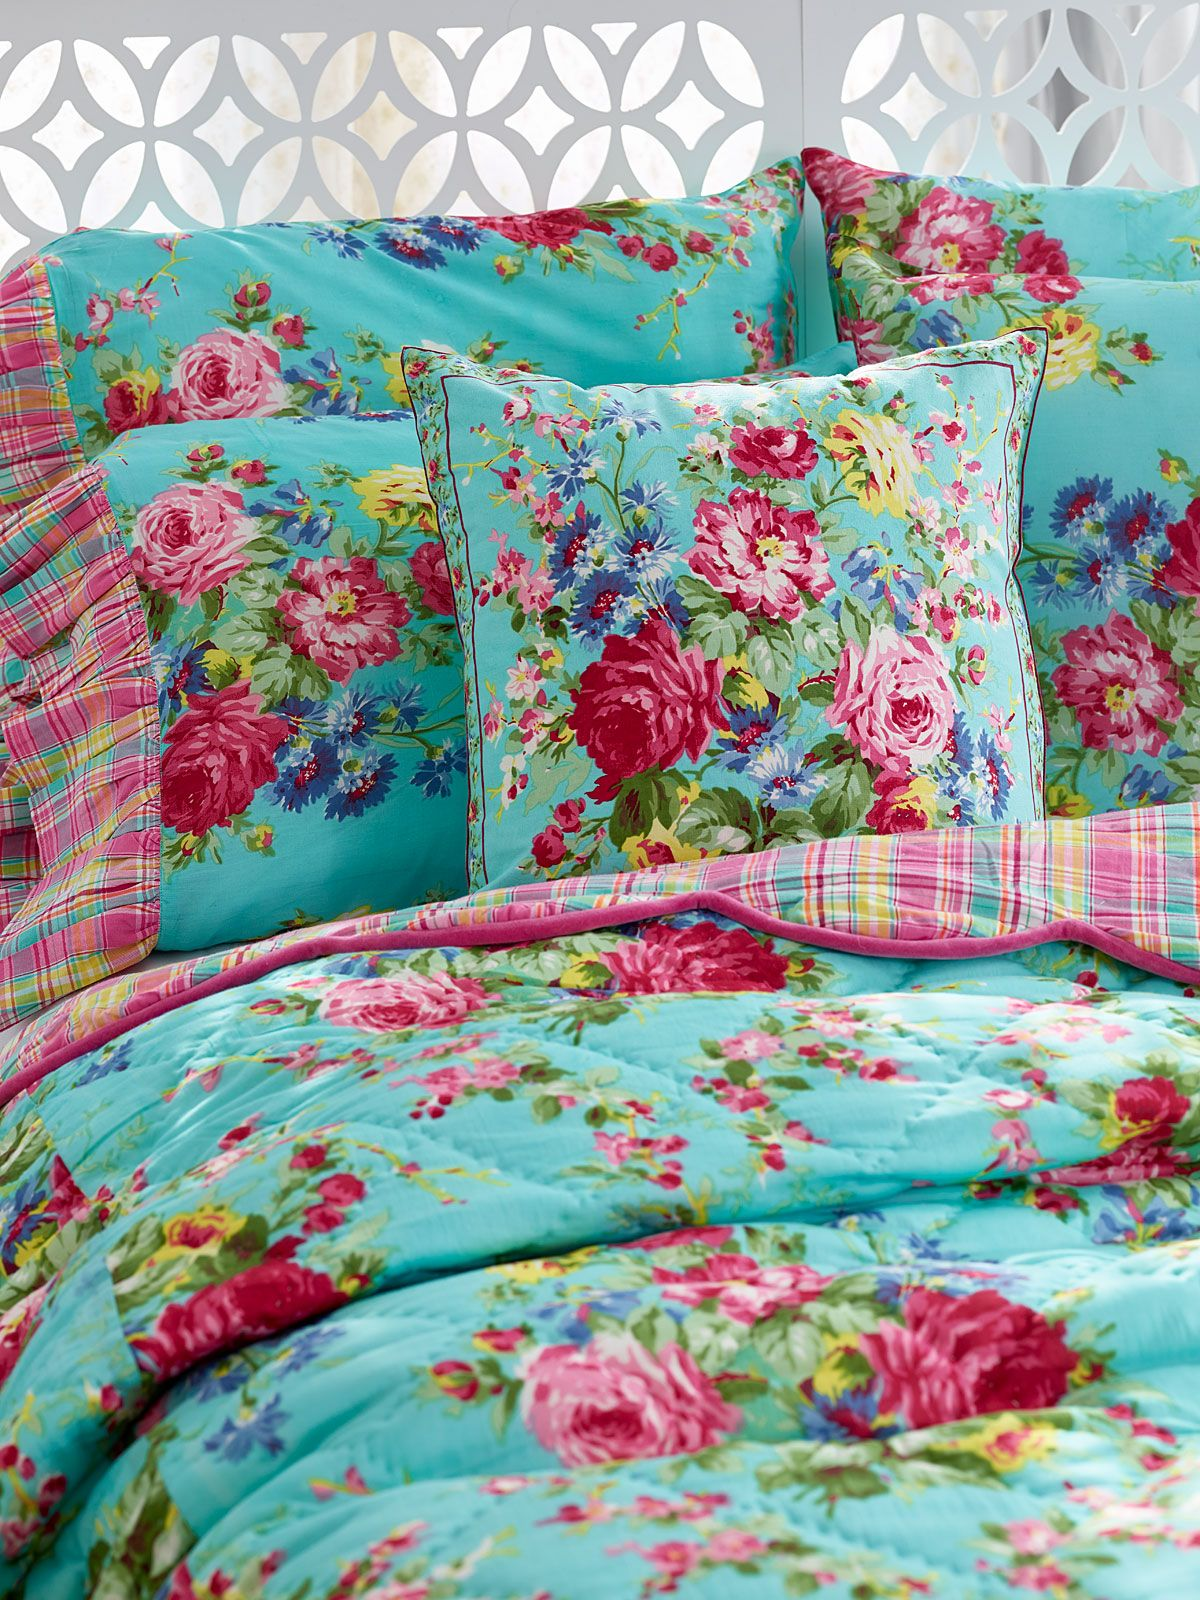 Cottage Rose Quilt Your Home, Bedding Beautiful Designs